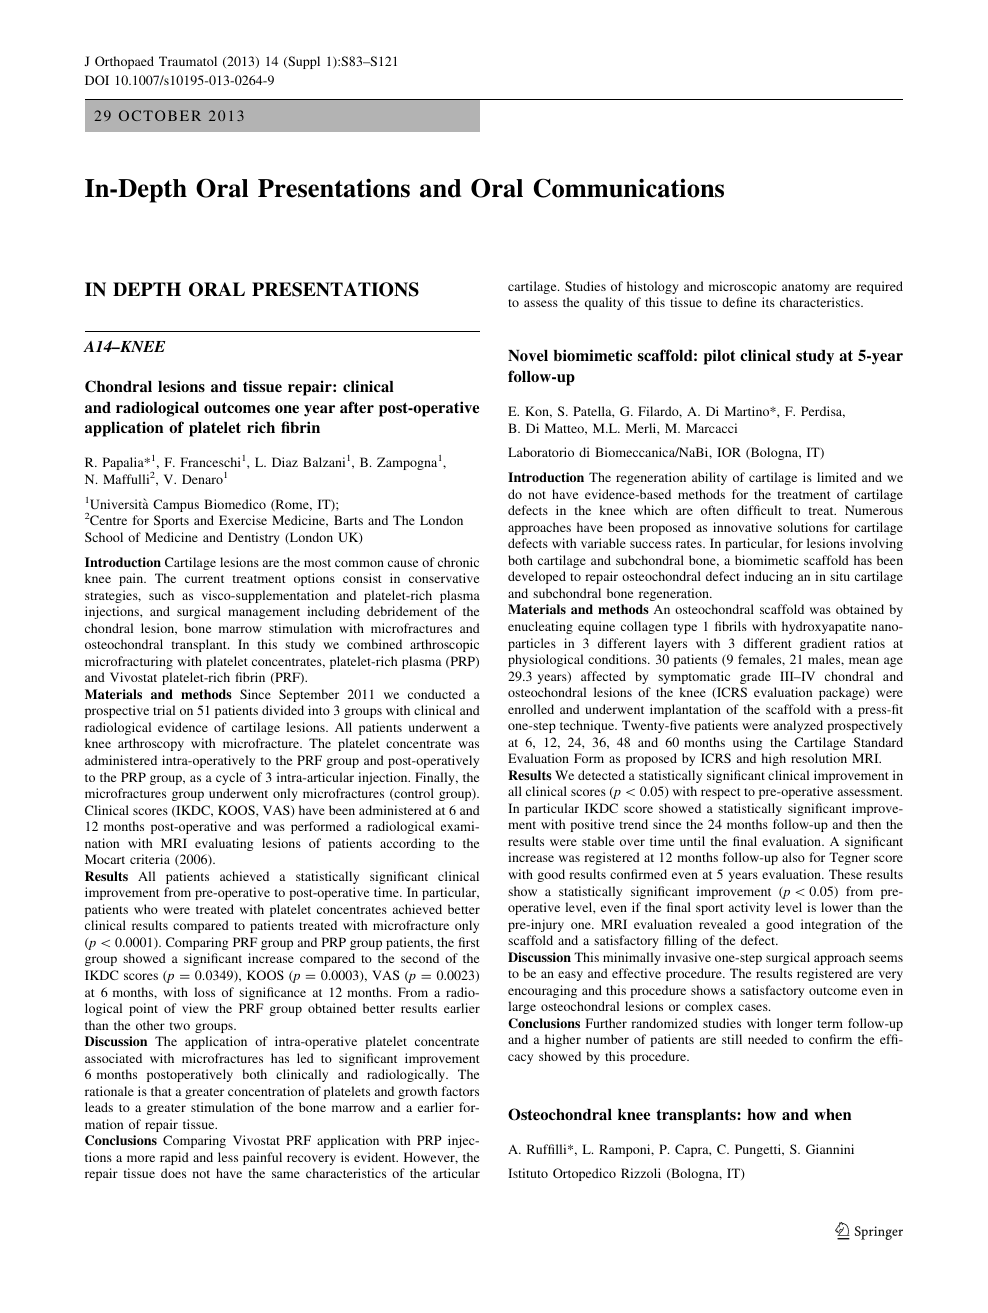 In-Depth Oral Presentations and Oral Communications – topic